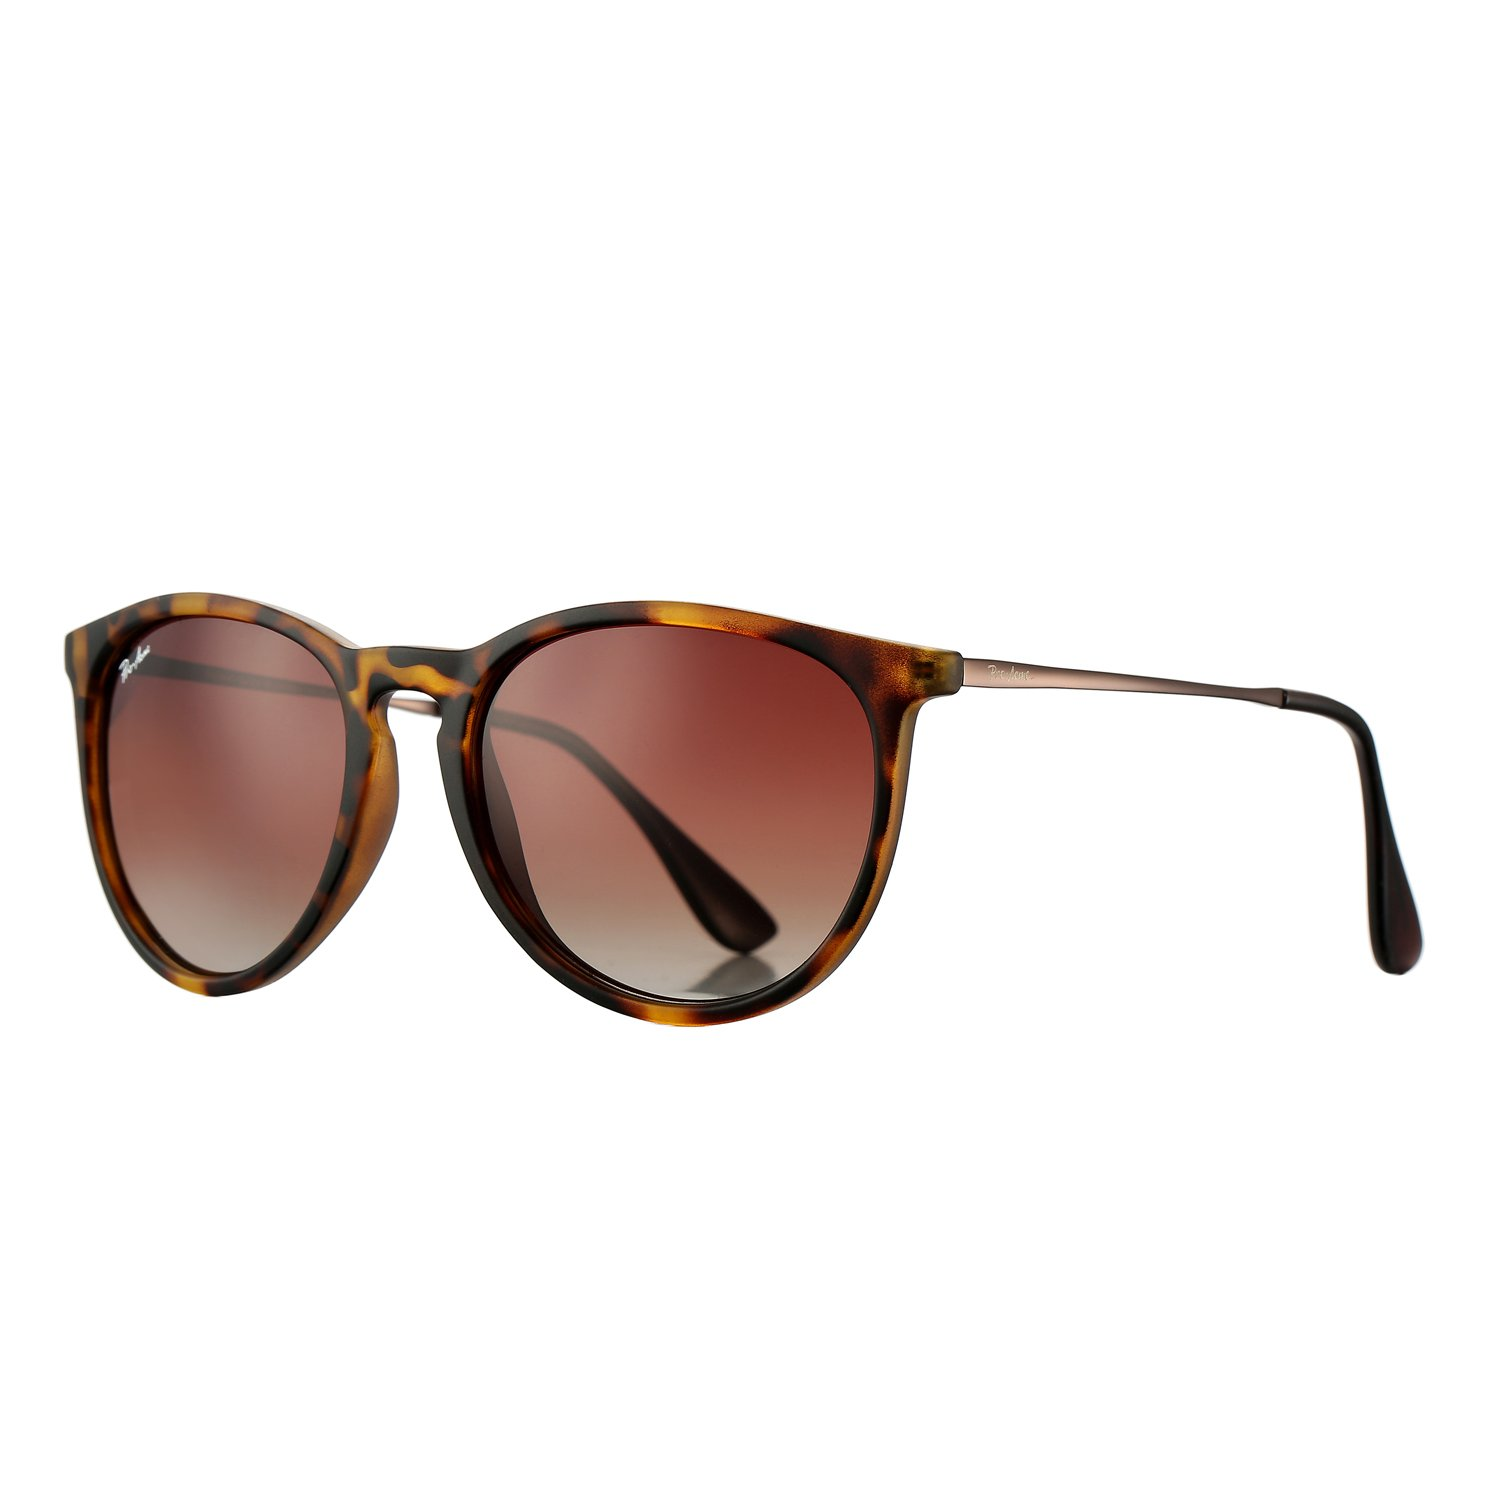 Polarized Sunglasses for Women Classic Round Style 100% UV Protection (Tortoise; Gunmetal/Brown Gradient) by Pro Acme